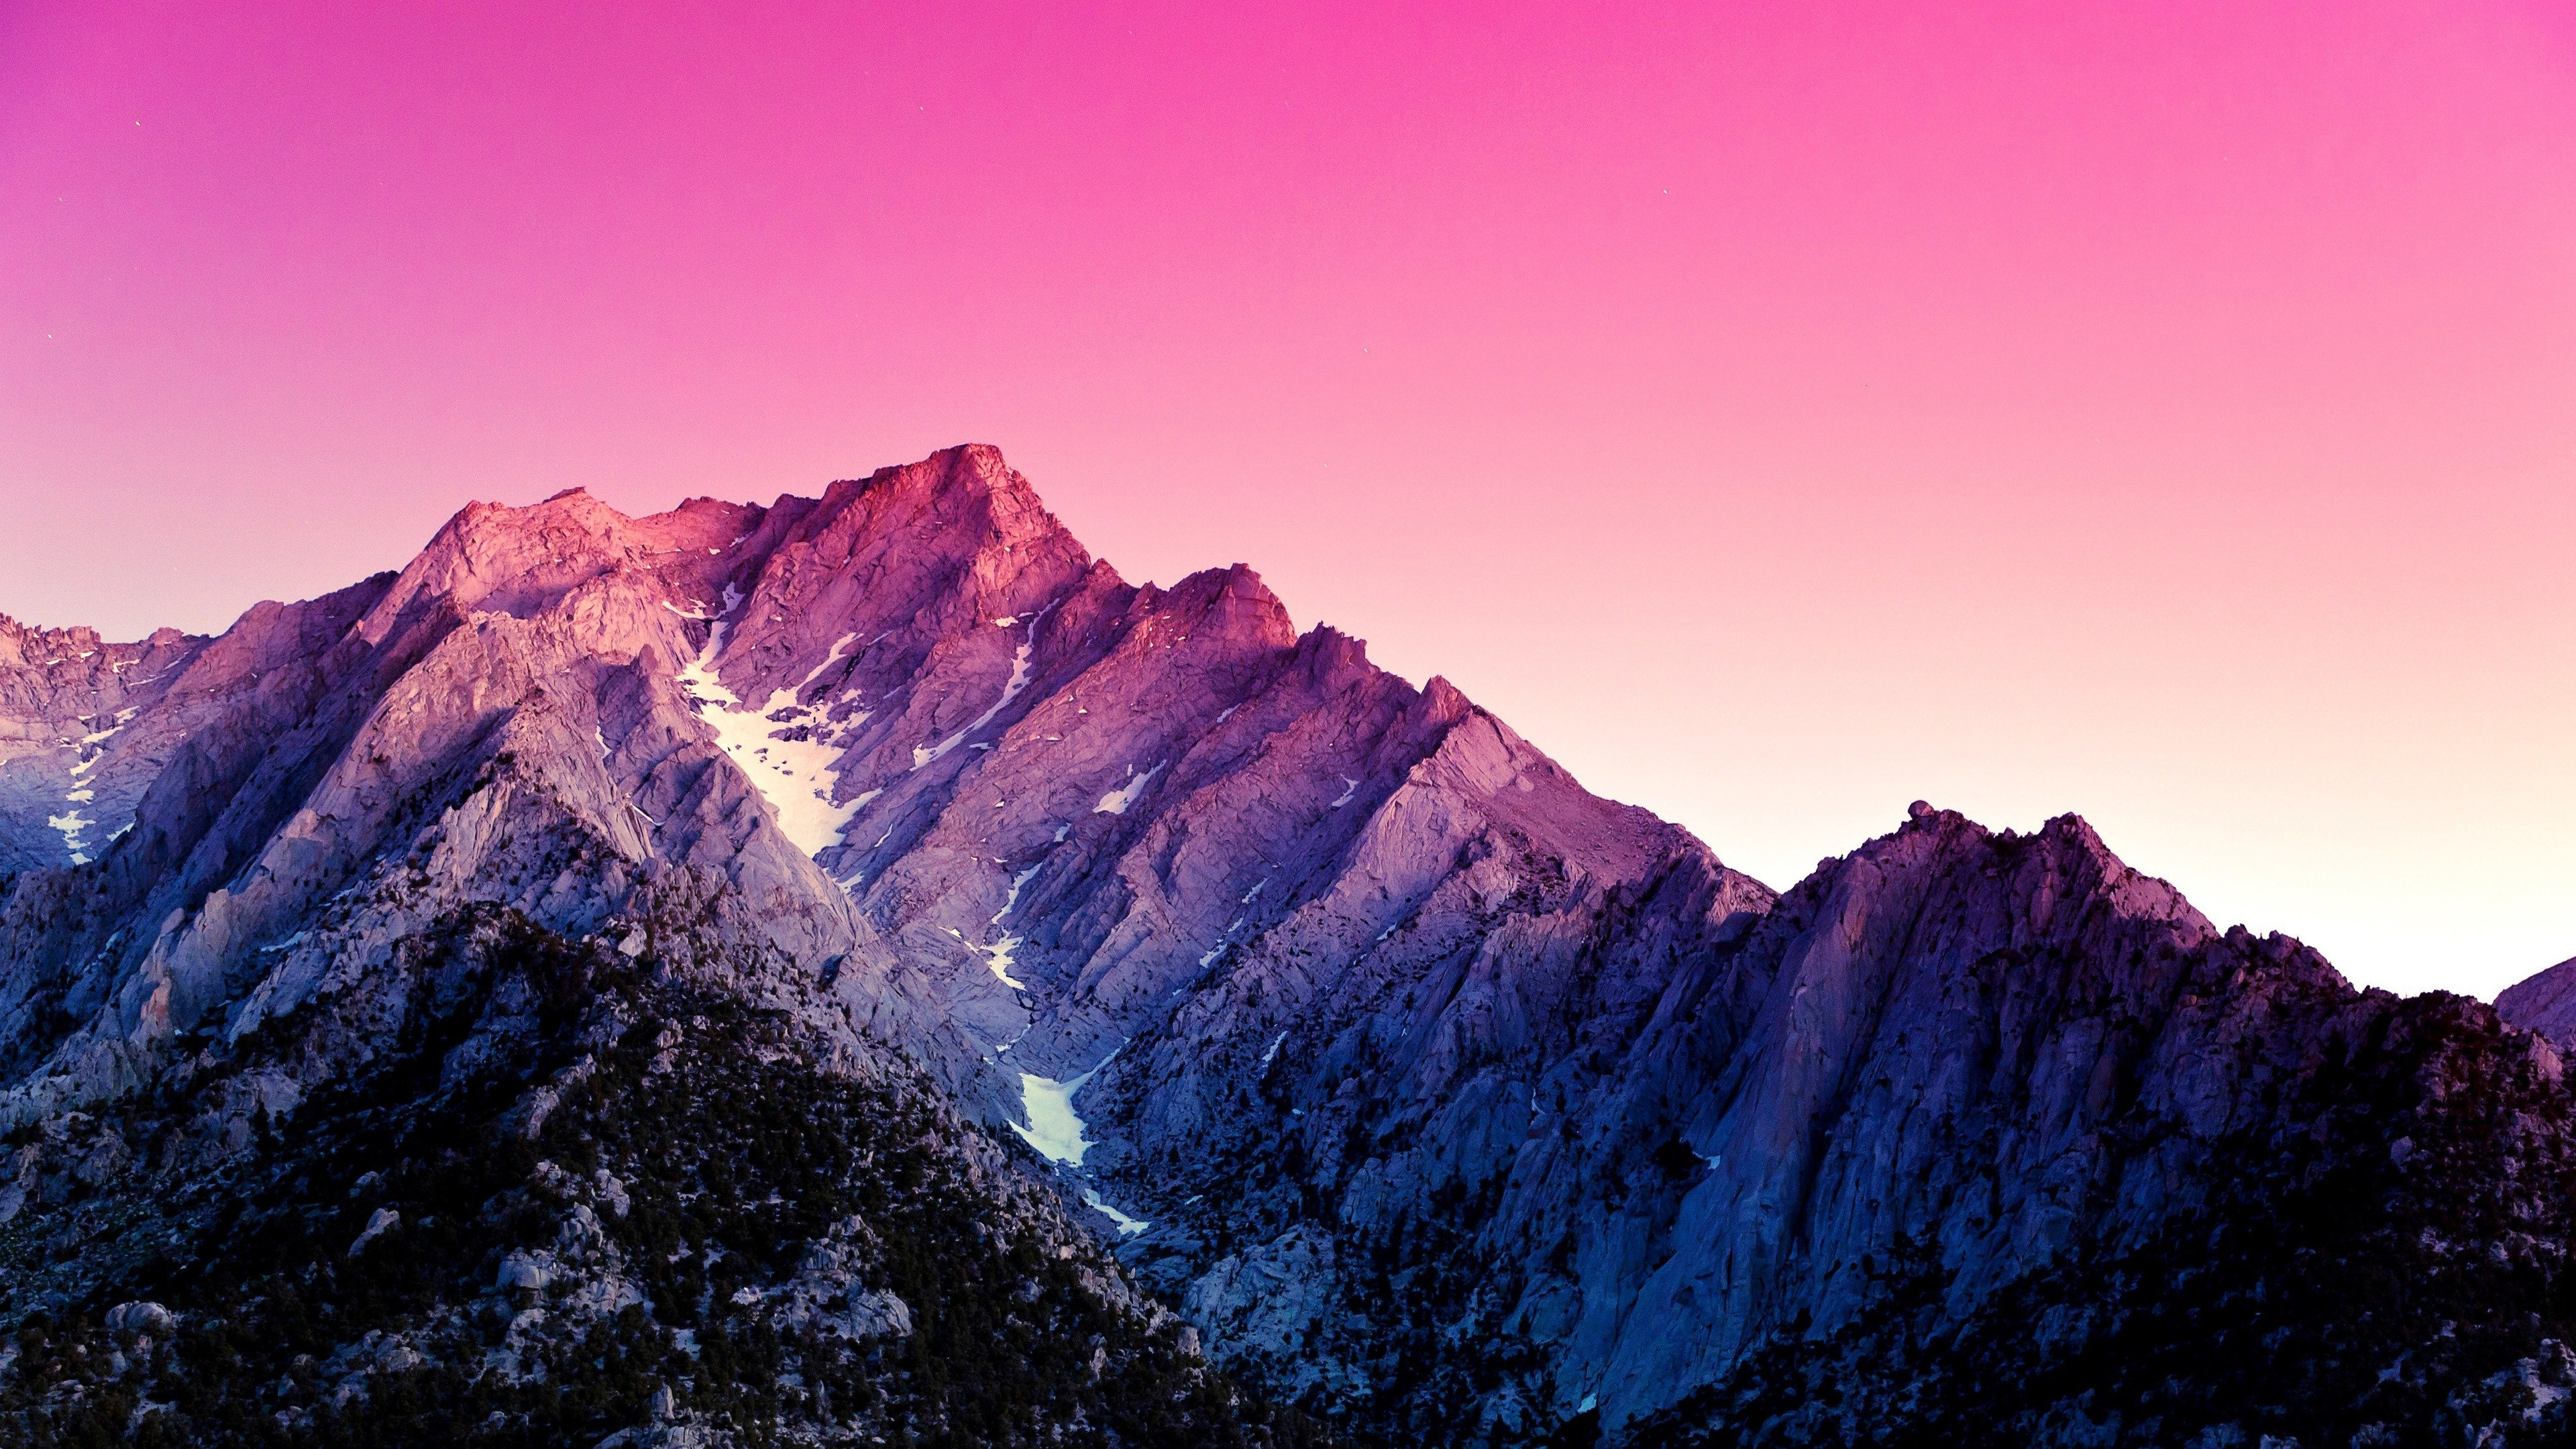 Stunning Mountain Desktop Wallpaper HQ